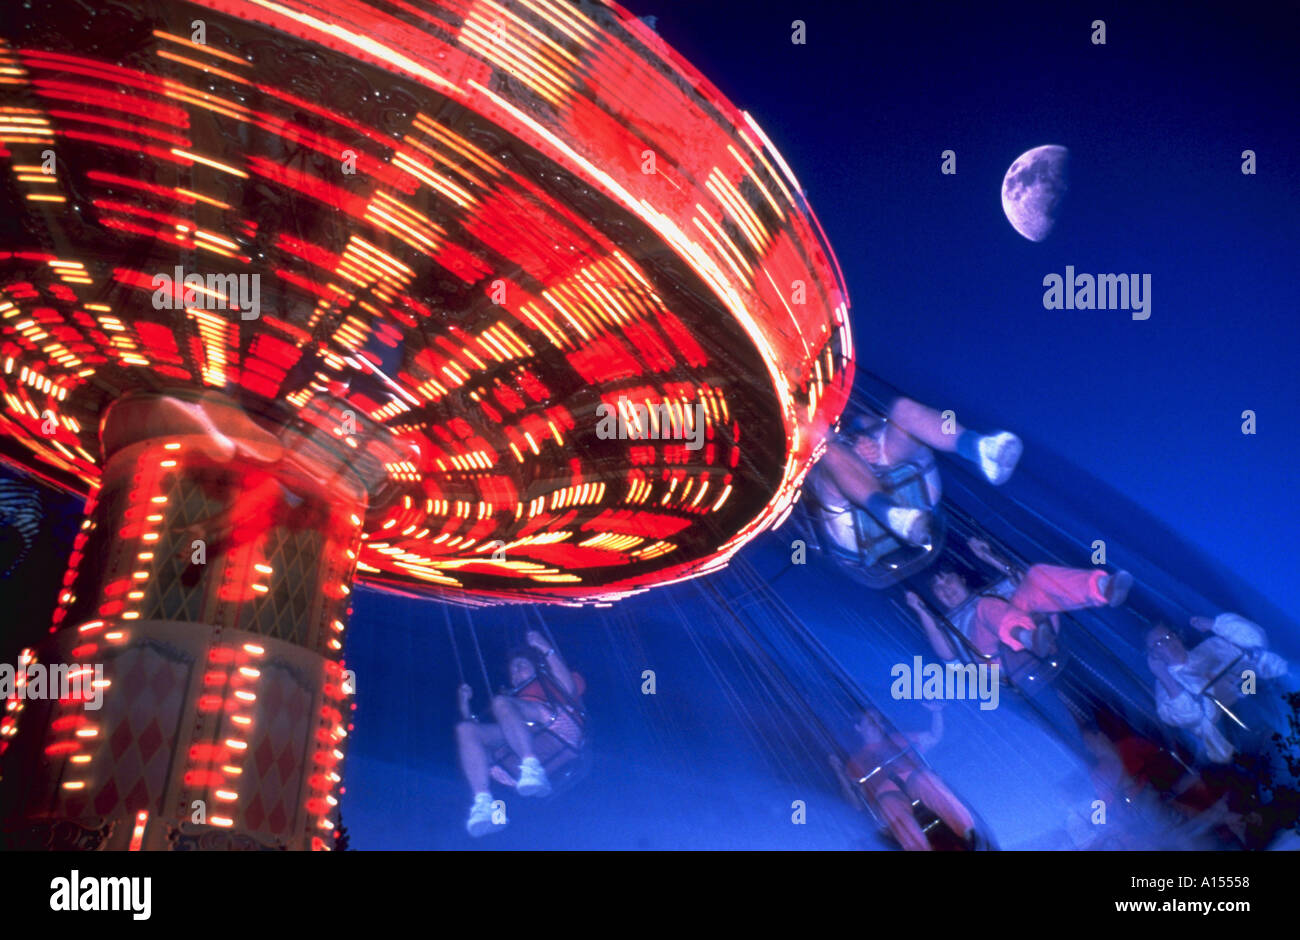 Kids at night with moon royalty free stock photography image - Blurred Image Of Children Riding A Carousel Swing At An Amusement Park With A Half Moon In The Night Sky In The Background Novastock Alamy Stock Photo